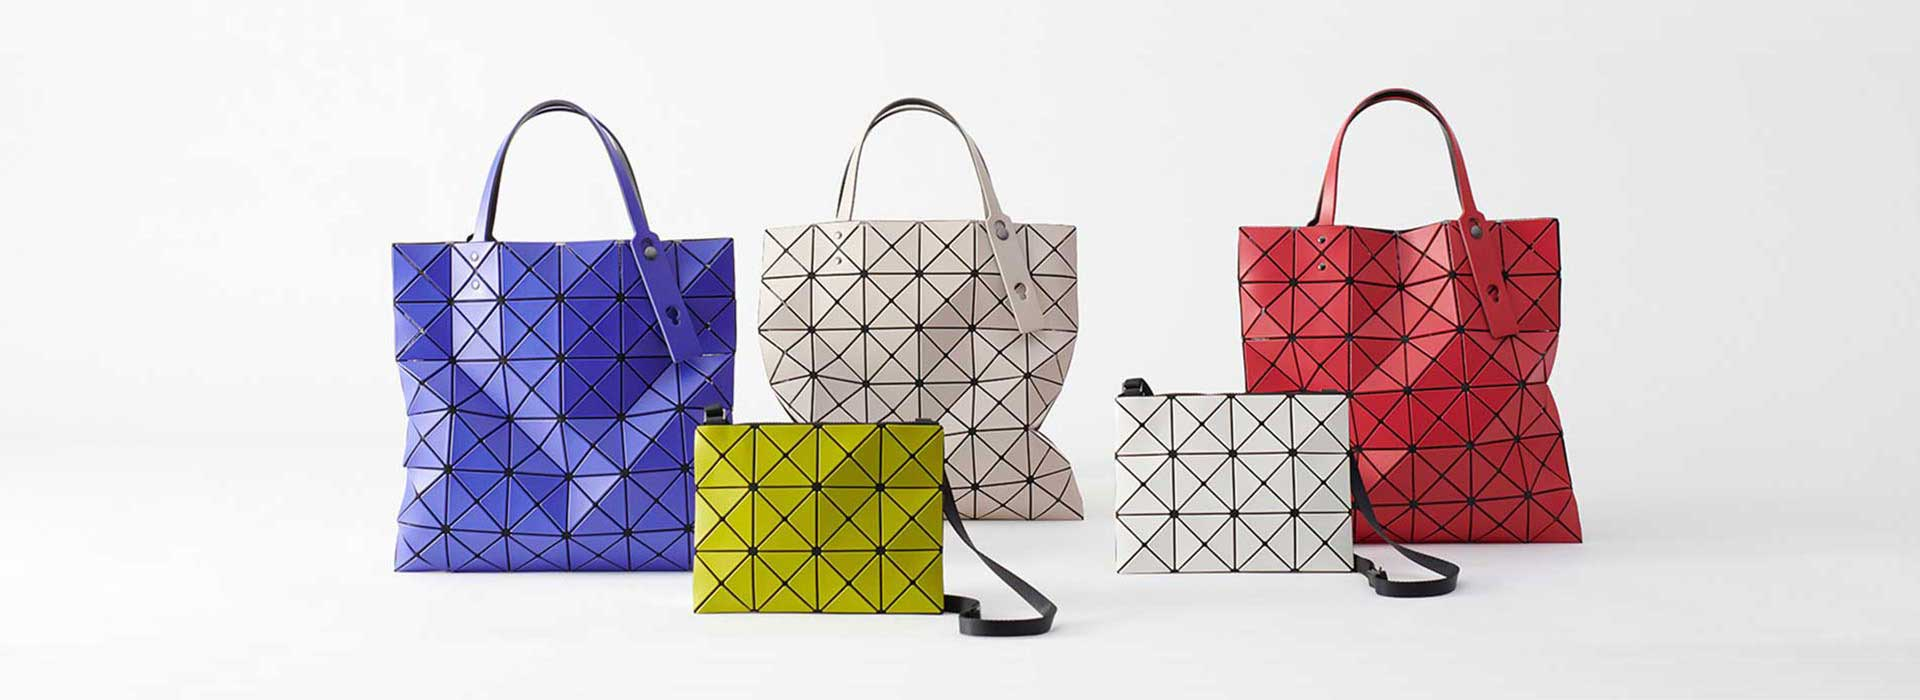 Issey Miyake Online Store, Cheap Bao Bao Issey Miyake Totes,Shoulder Bags,Crossbody Bags,Backpacks,Pouches Outlet Sale